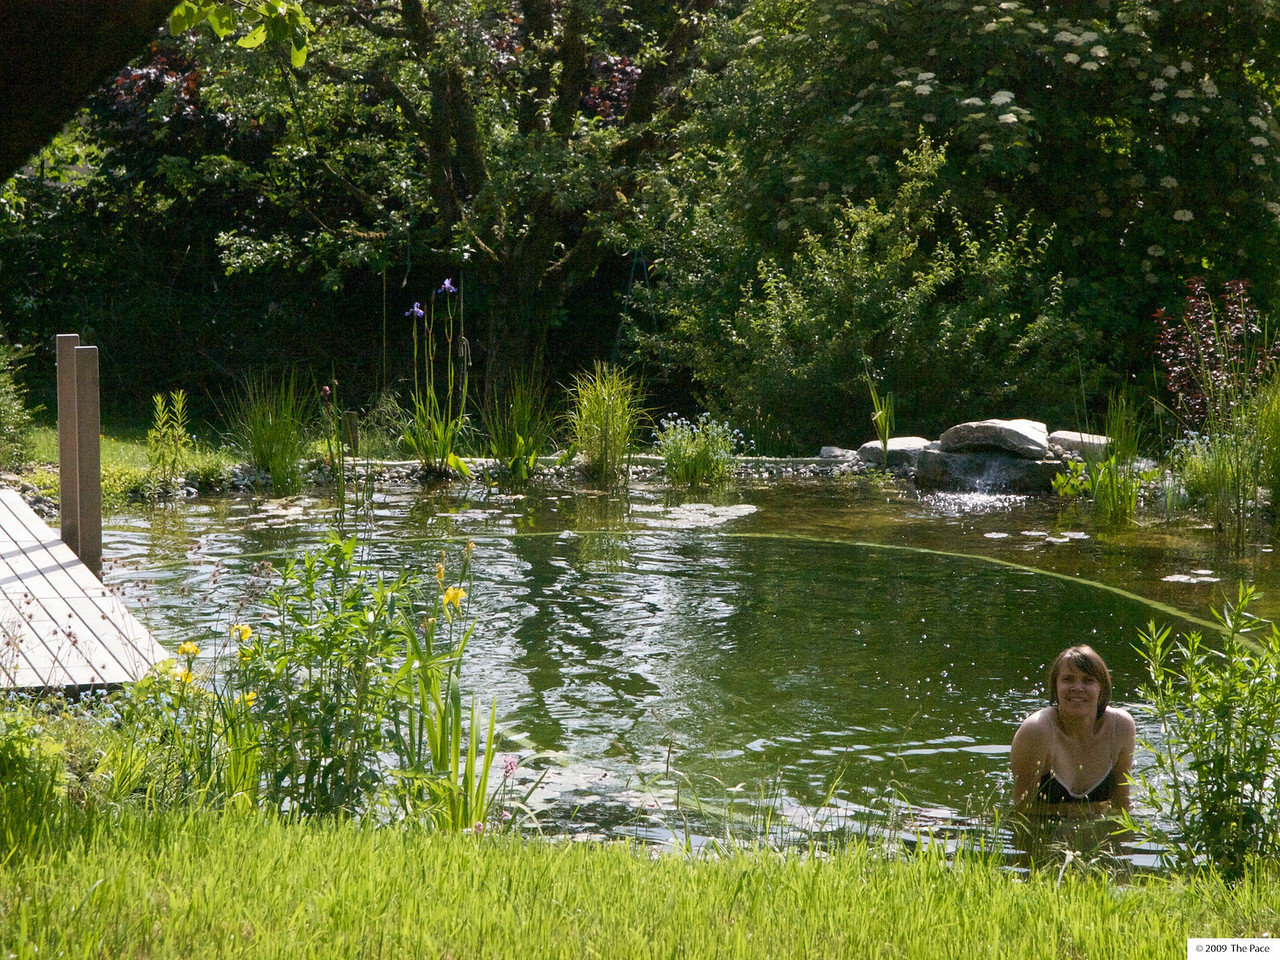 Monday 25th May 2009 - This year we have more time to enjoy the pond